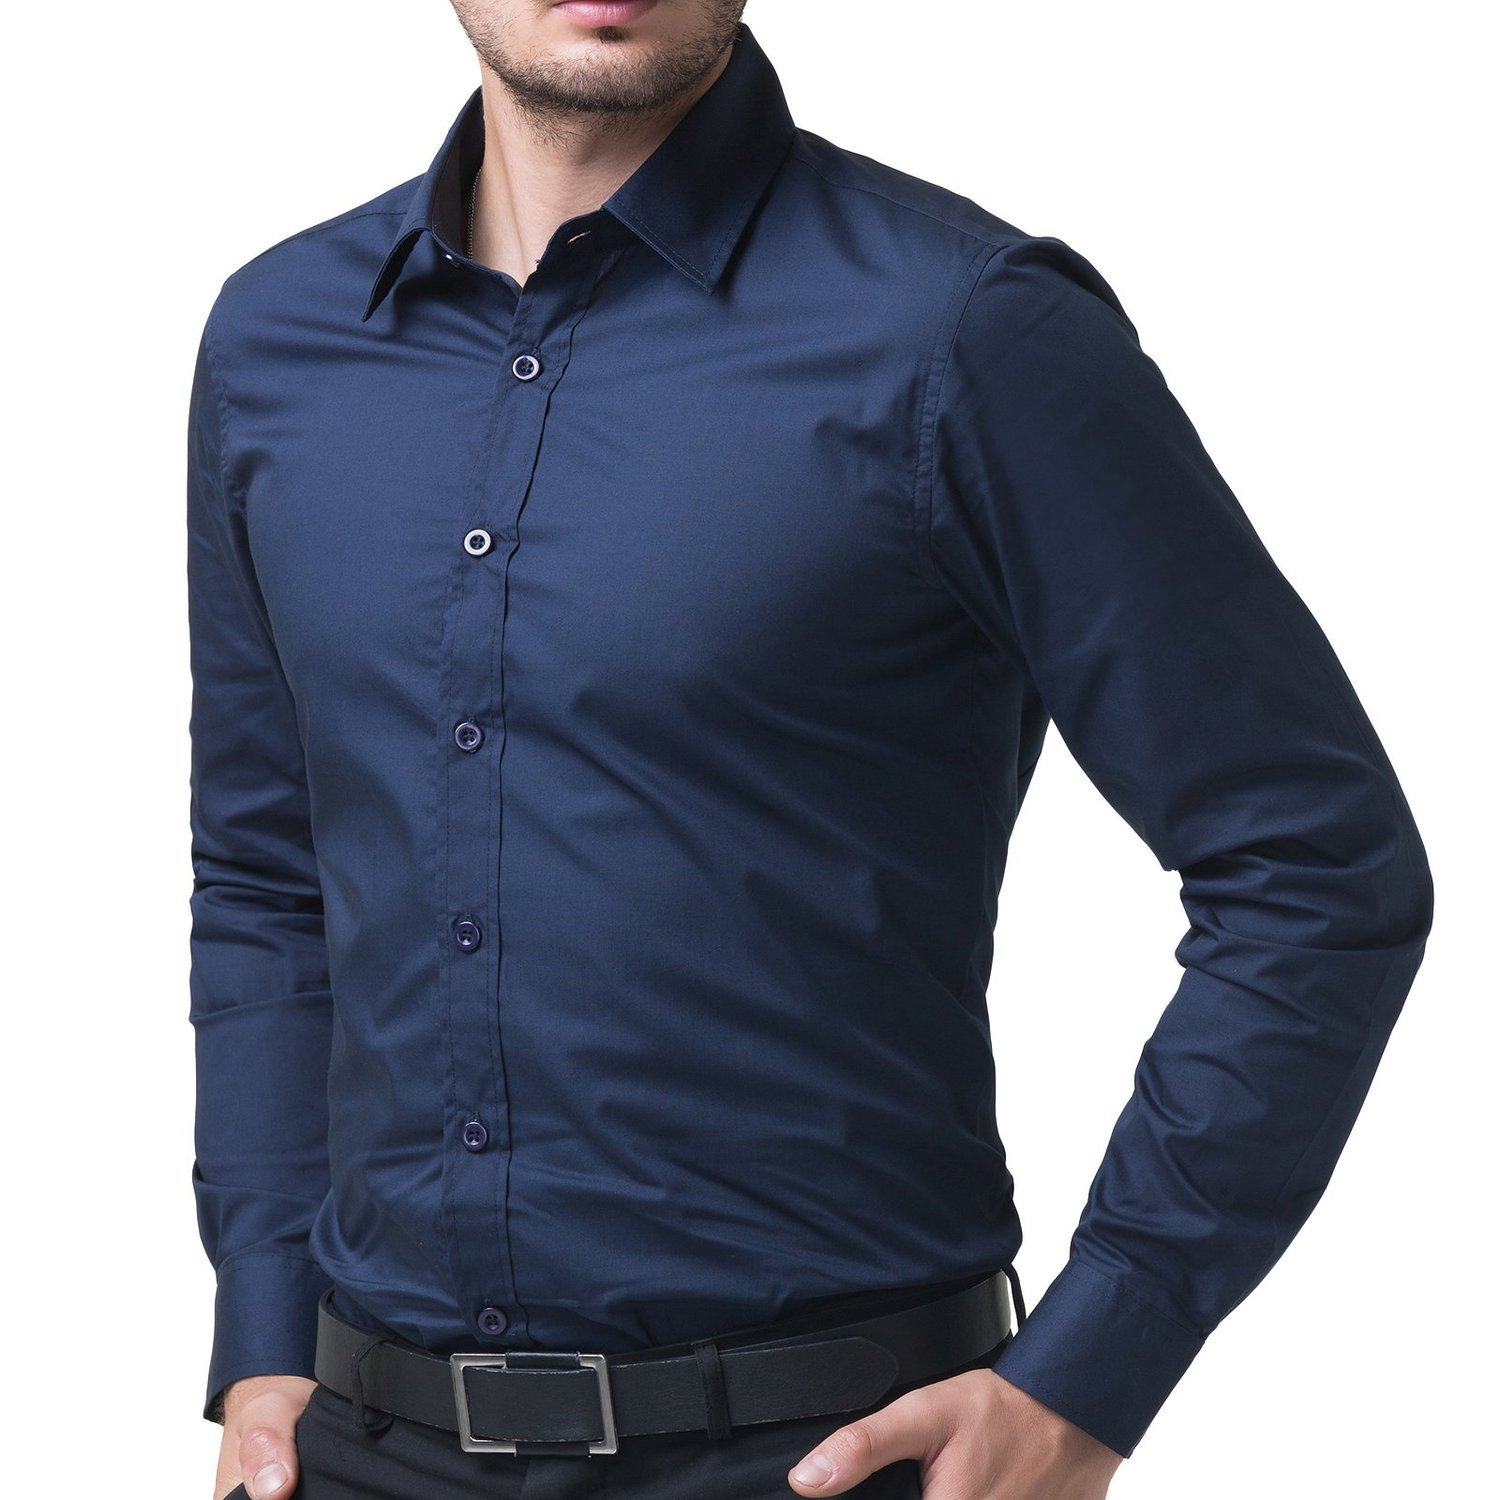 Blue shirt collection Known to flatter and complement all skin tones, blue shirts are practically a human right for working men. Choose your weight, weave, collar and cuff before finding fit perfection in our latest collection of blues.